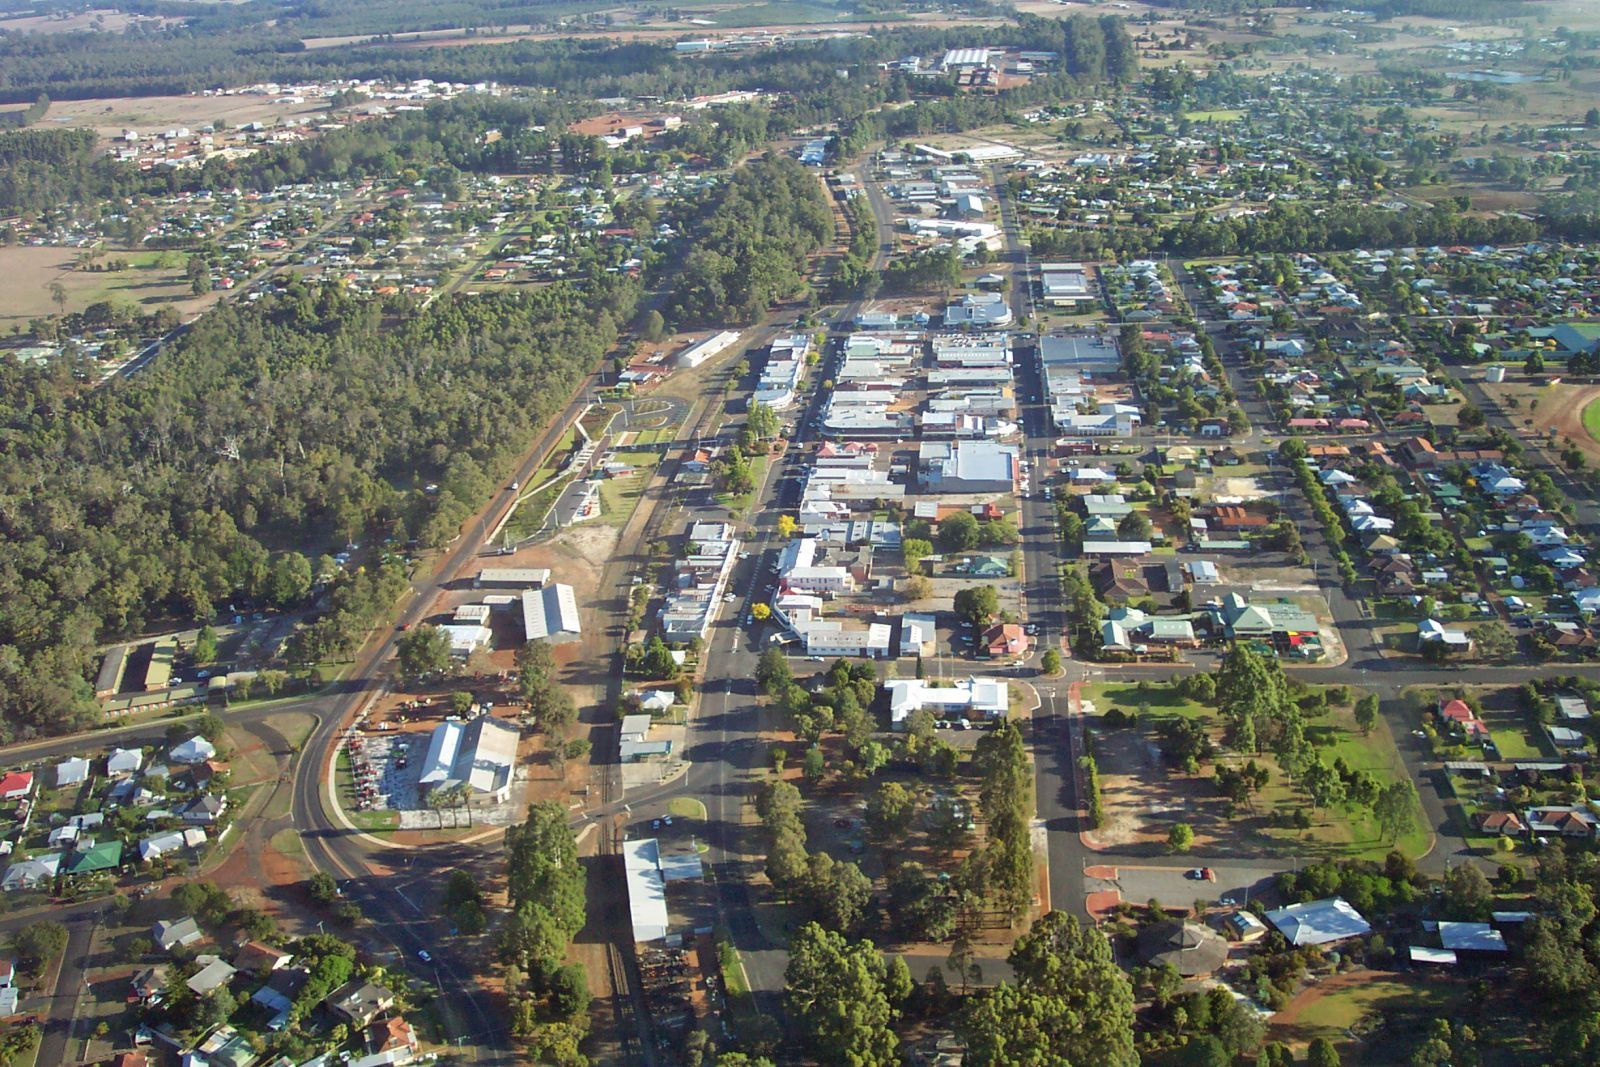 West Australia Shire of Manjimup located in the South West